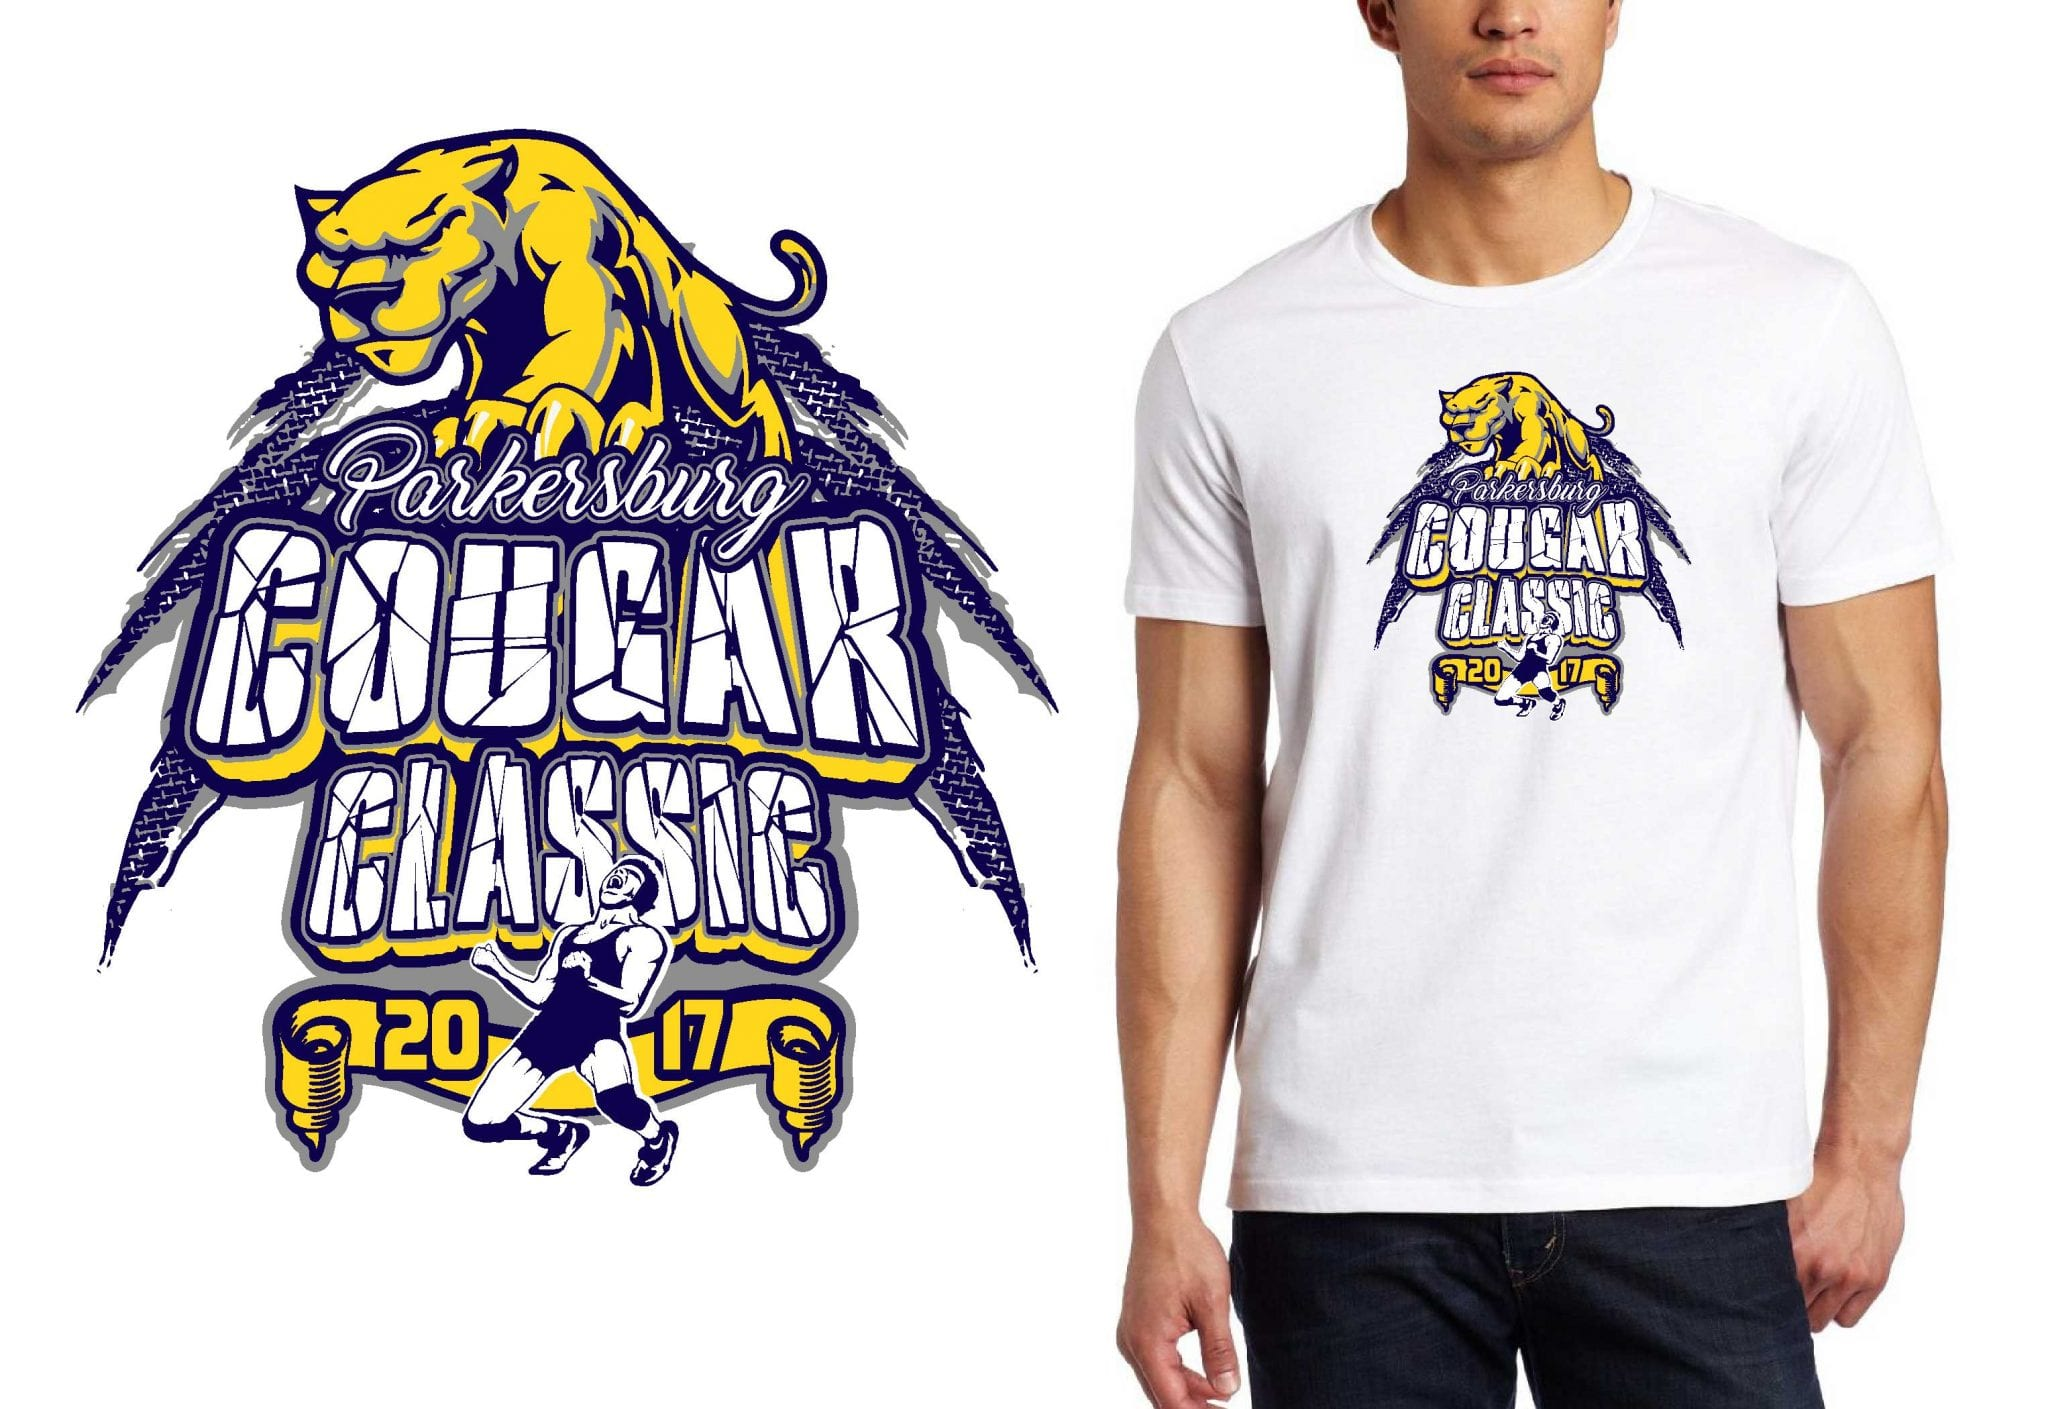 2017 Parkersburg Cougar Classic vector logo design for wrestling t-shirt UrArtStudio